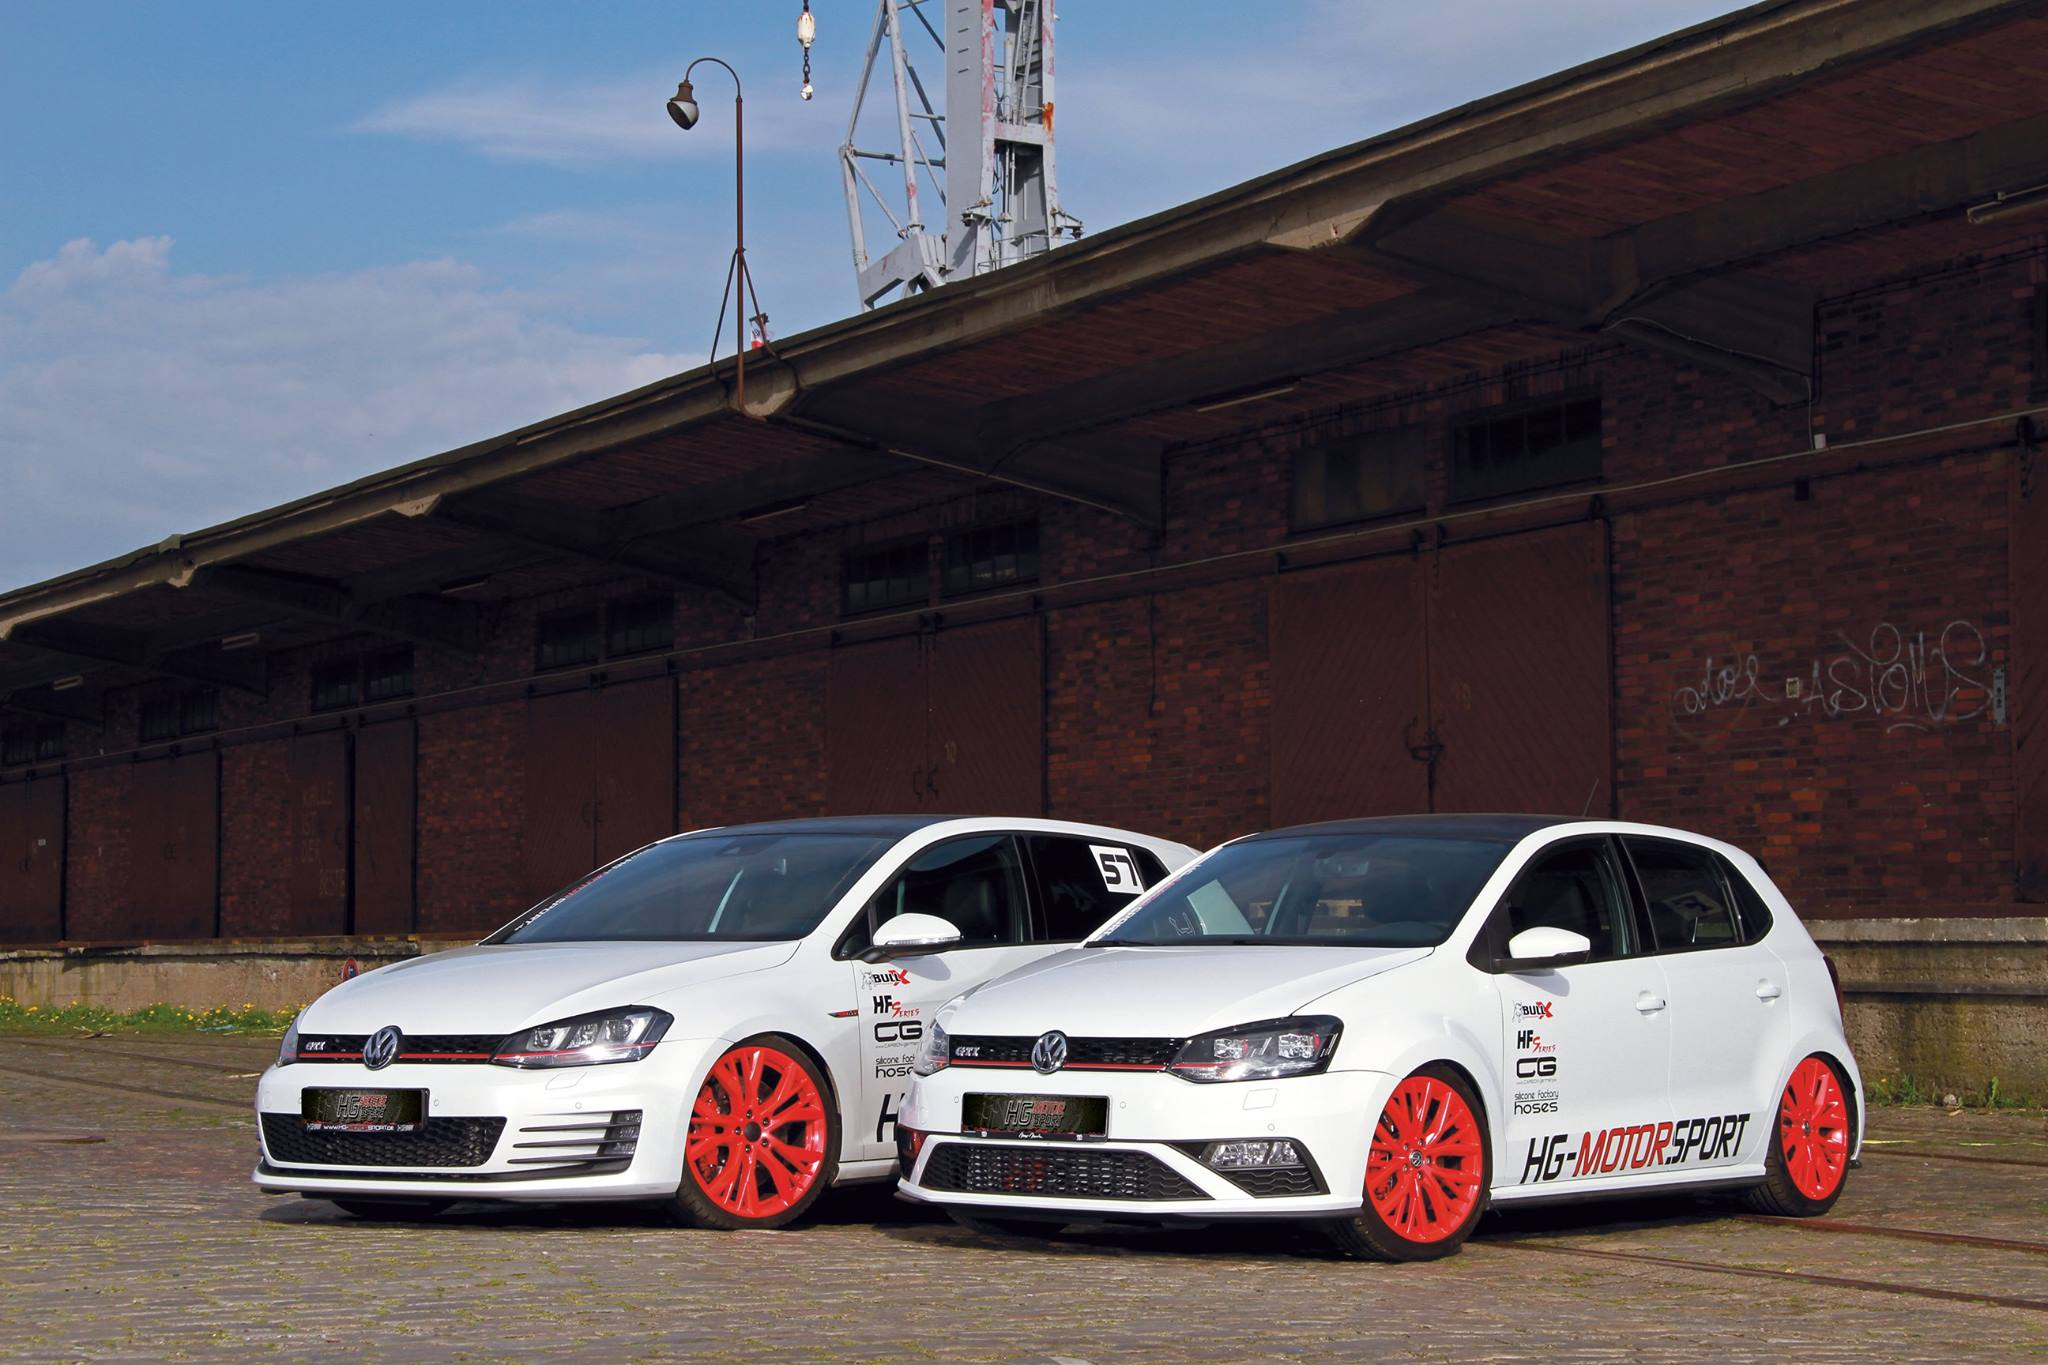 2015 volkswagen polo gti tuned to 260 hp by hg motorsport autoevolution. Black Bedroom Furniture Sets. Home Design Ideas